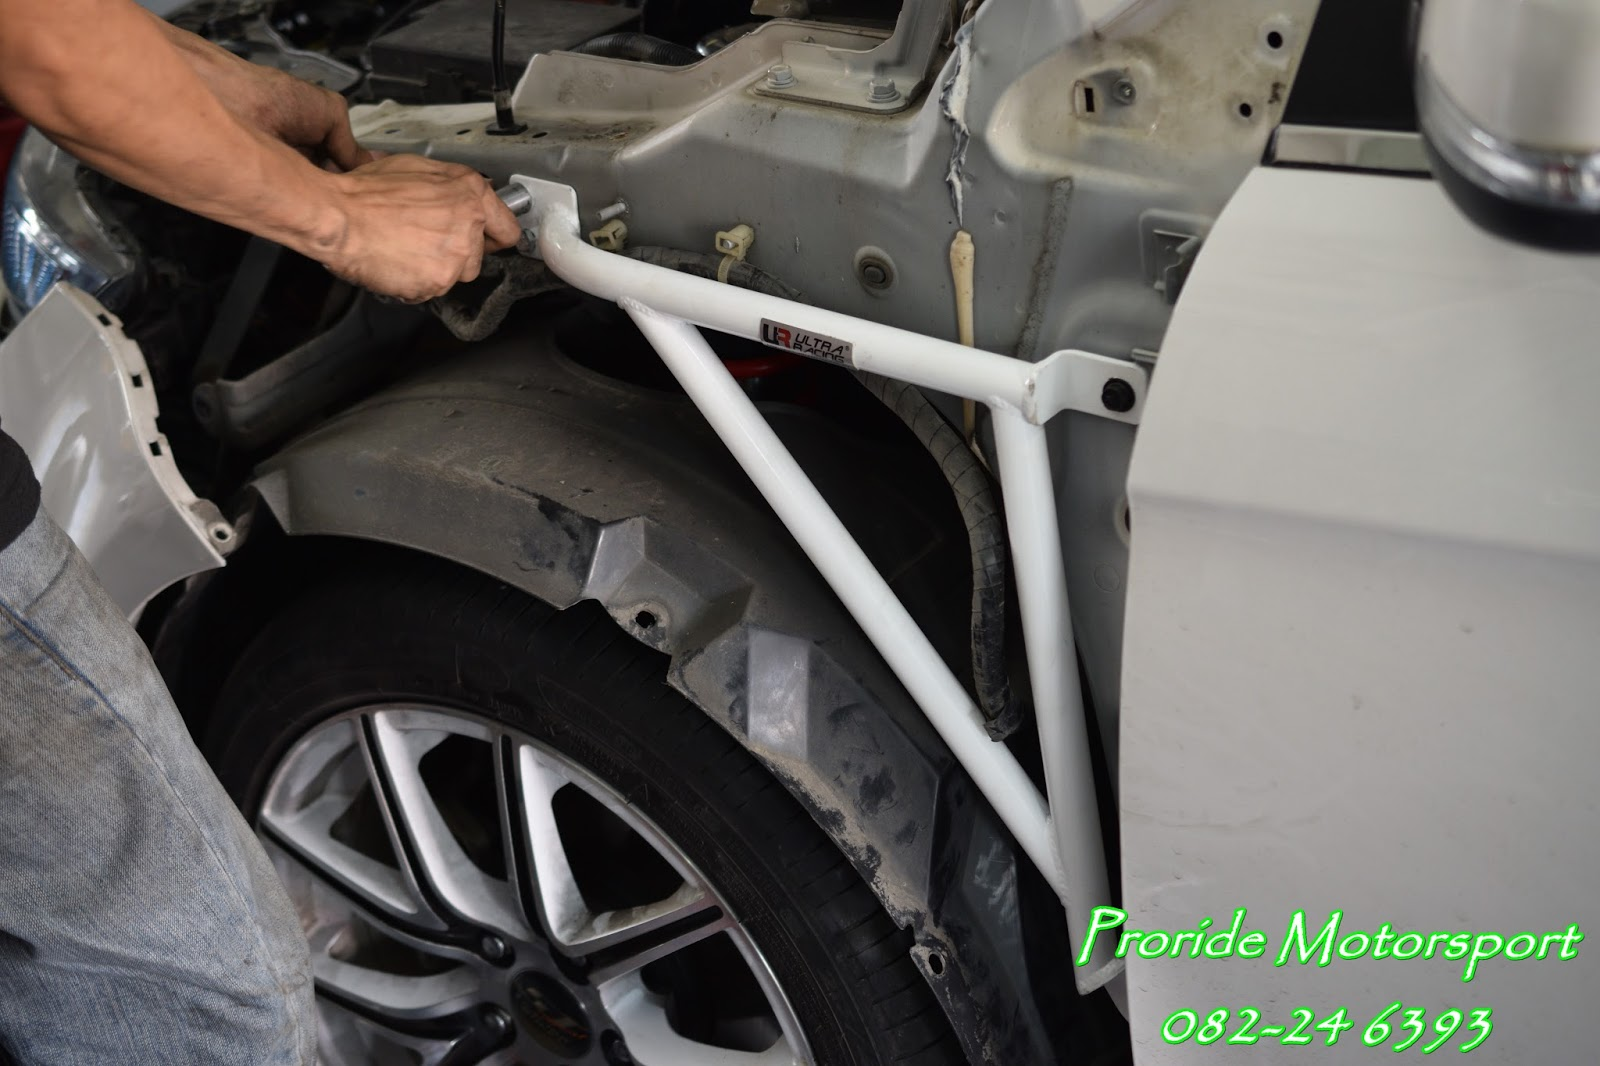 Pro-ride Motorsports: UR Ultra Racing SAFETY Bar for Proton Preve